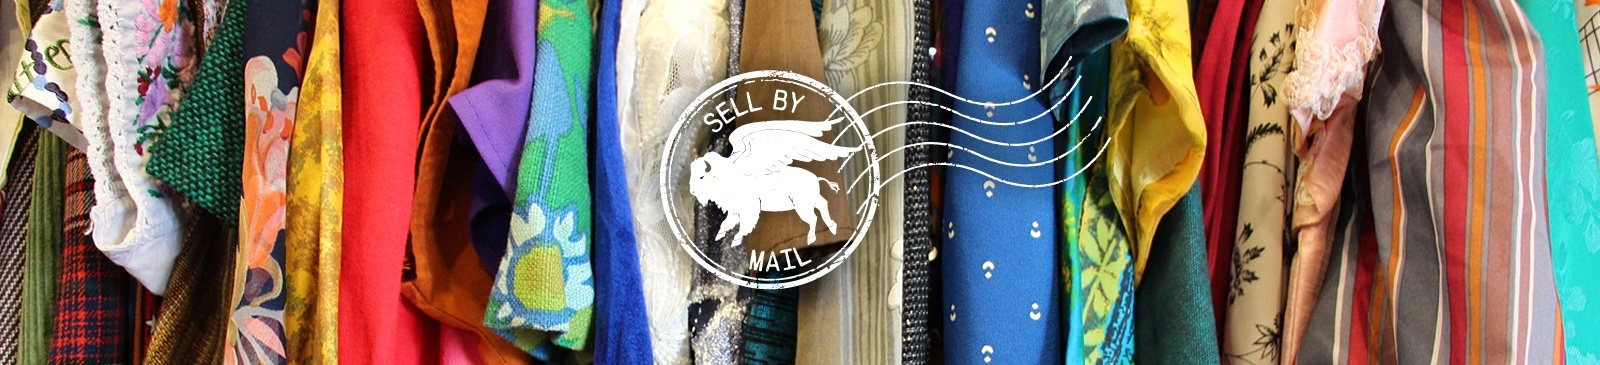 Sell by Mail with Buffalo Exchange